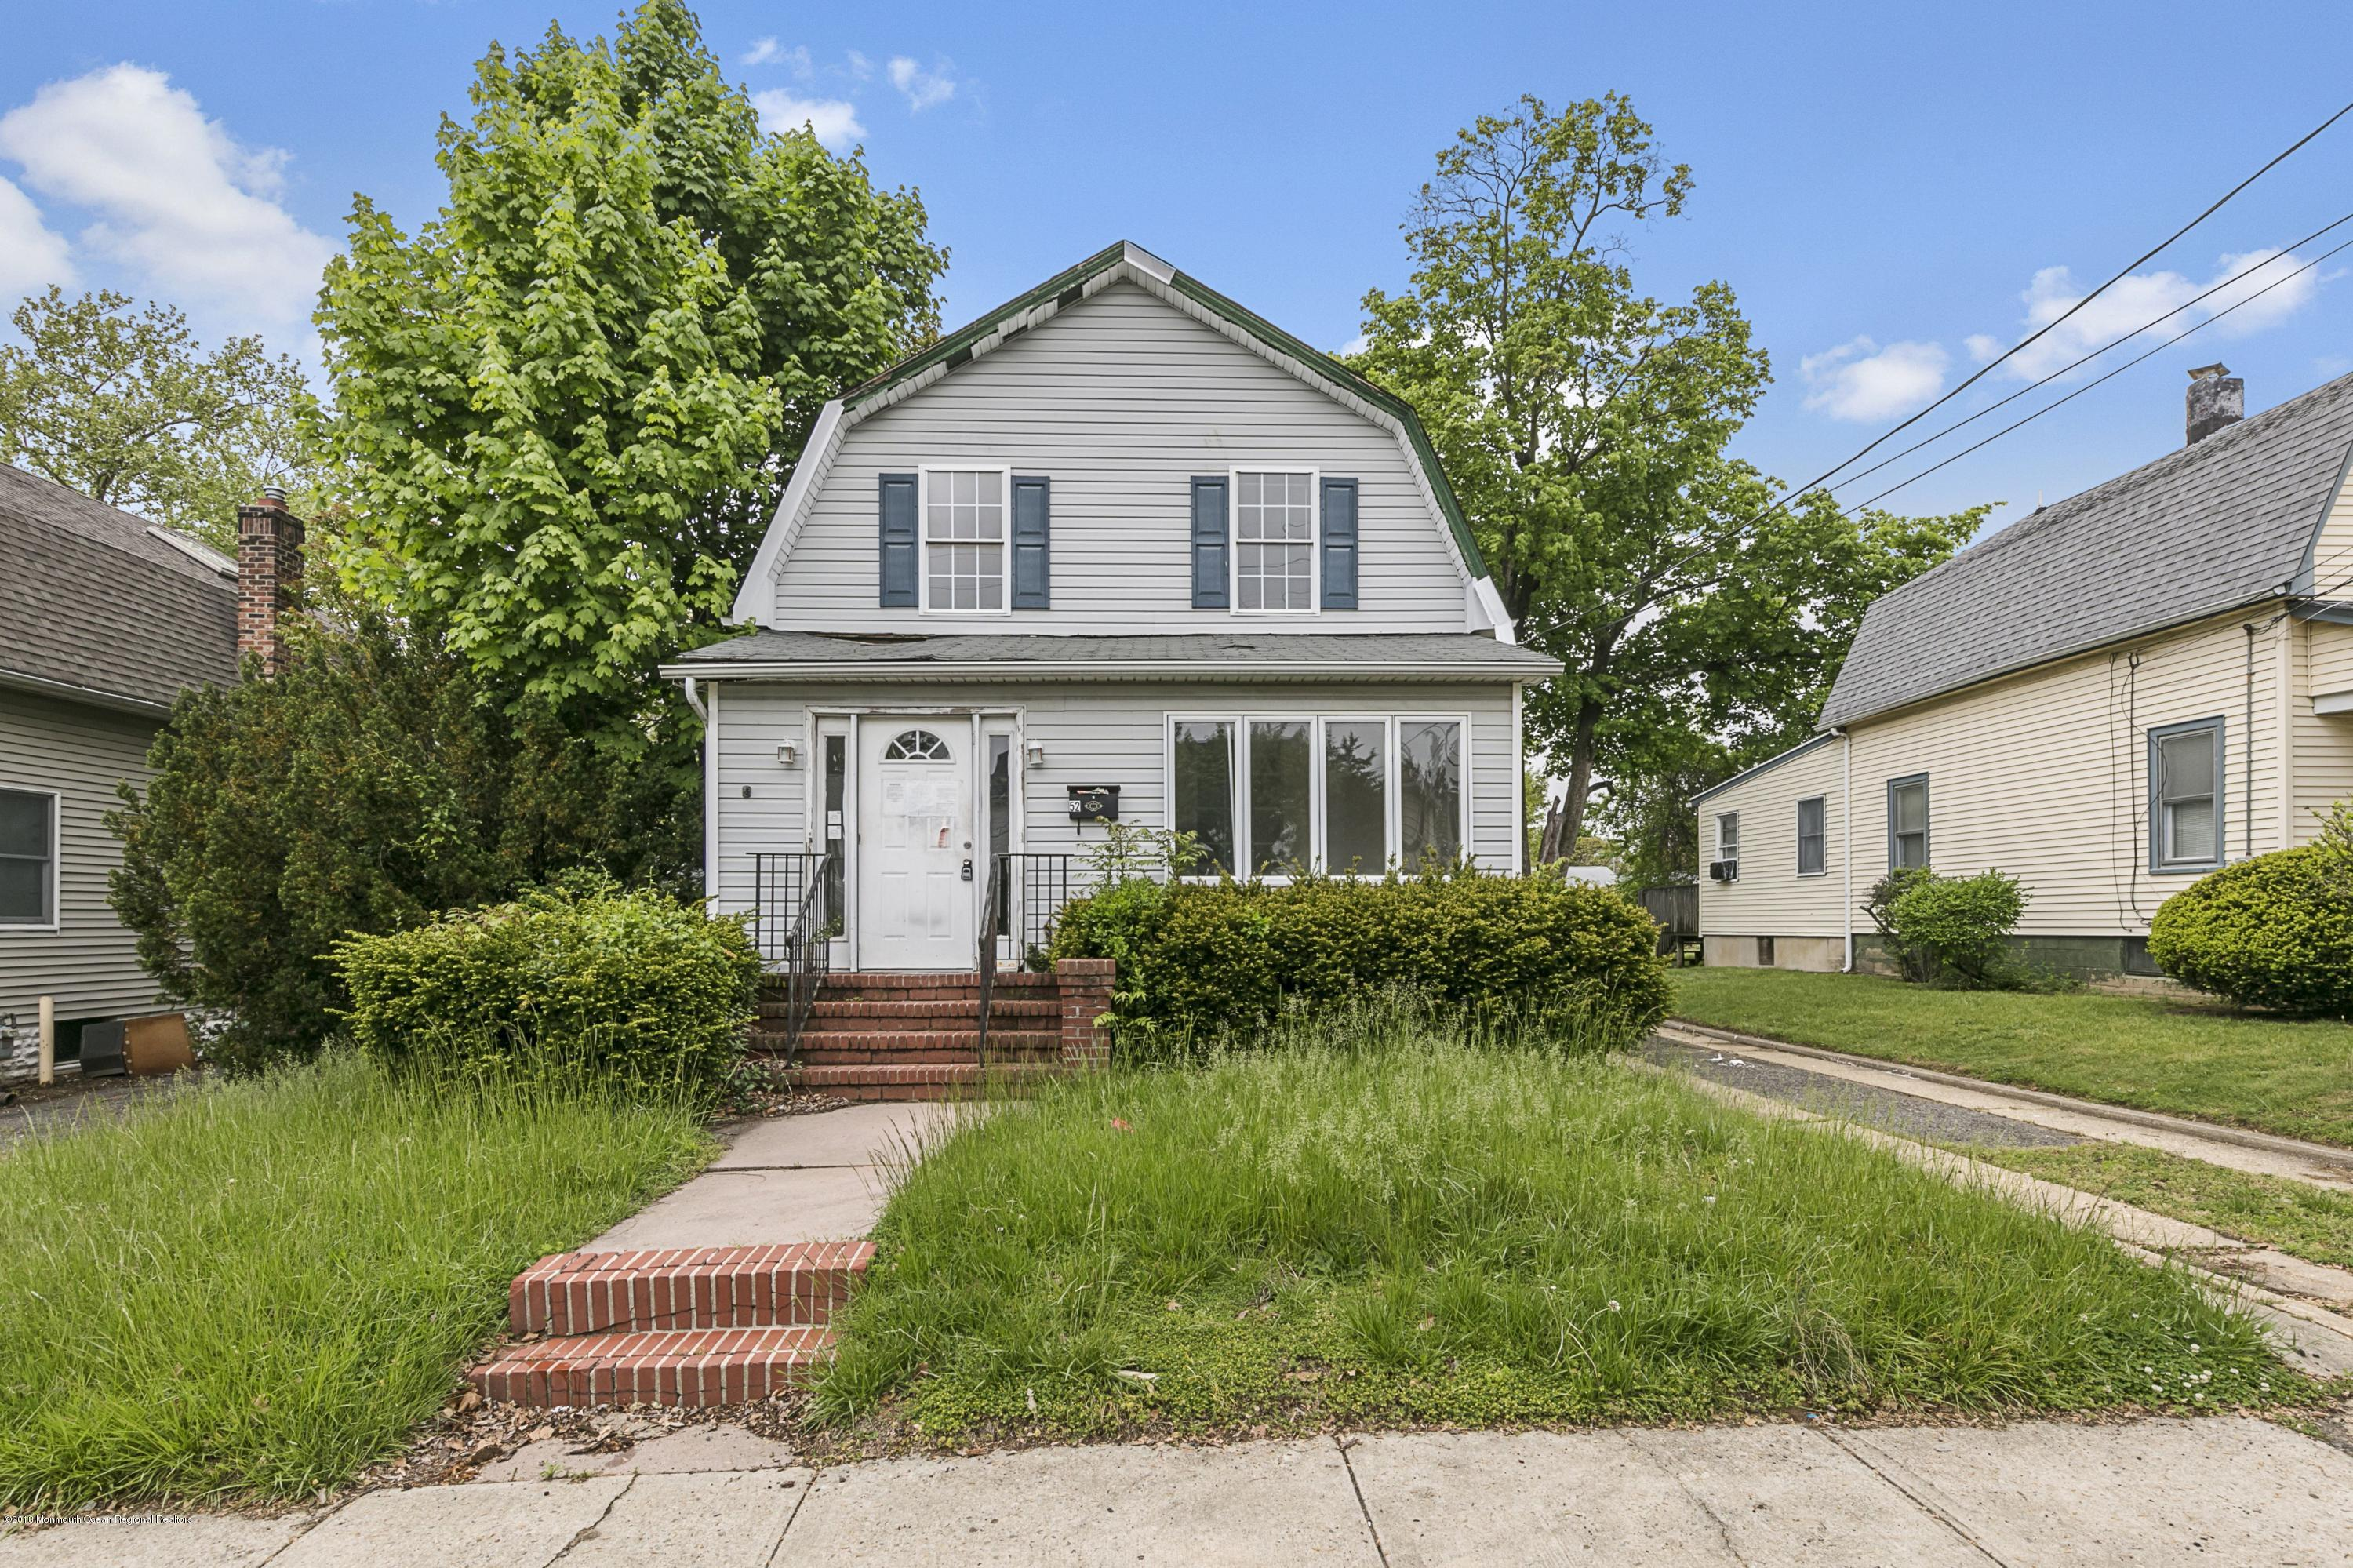 52 SUNSET AVENUE, RED BANK, NJ 07701